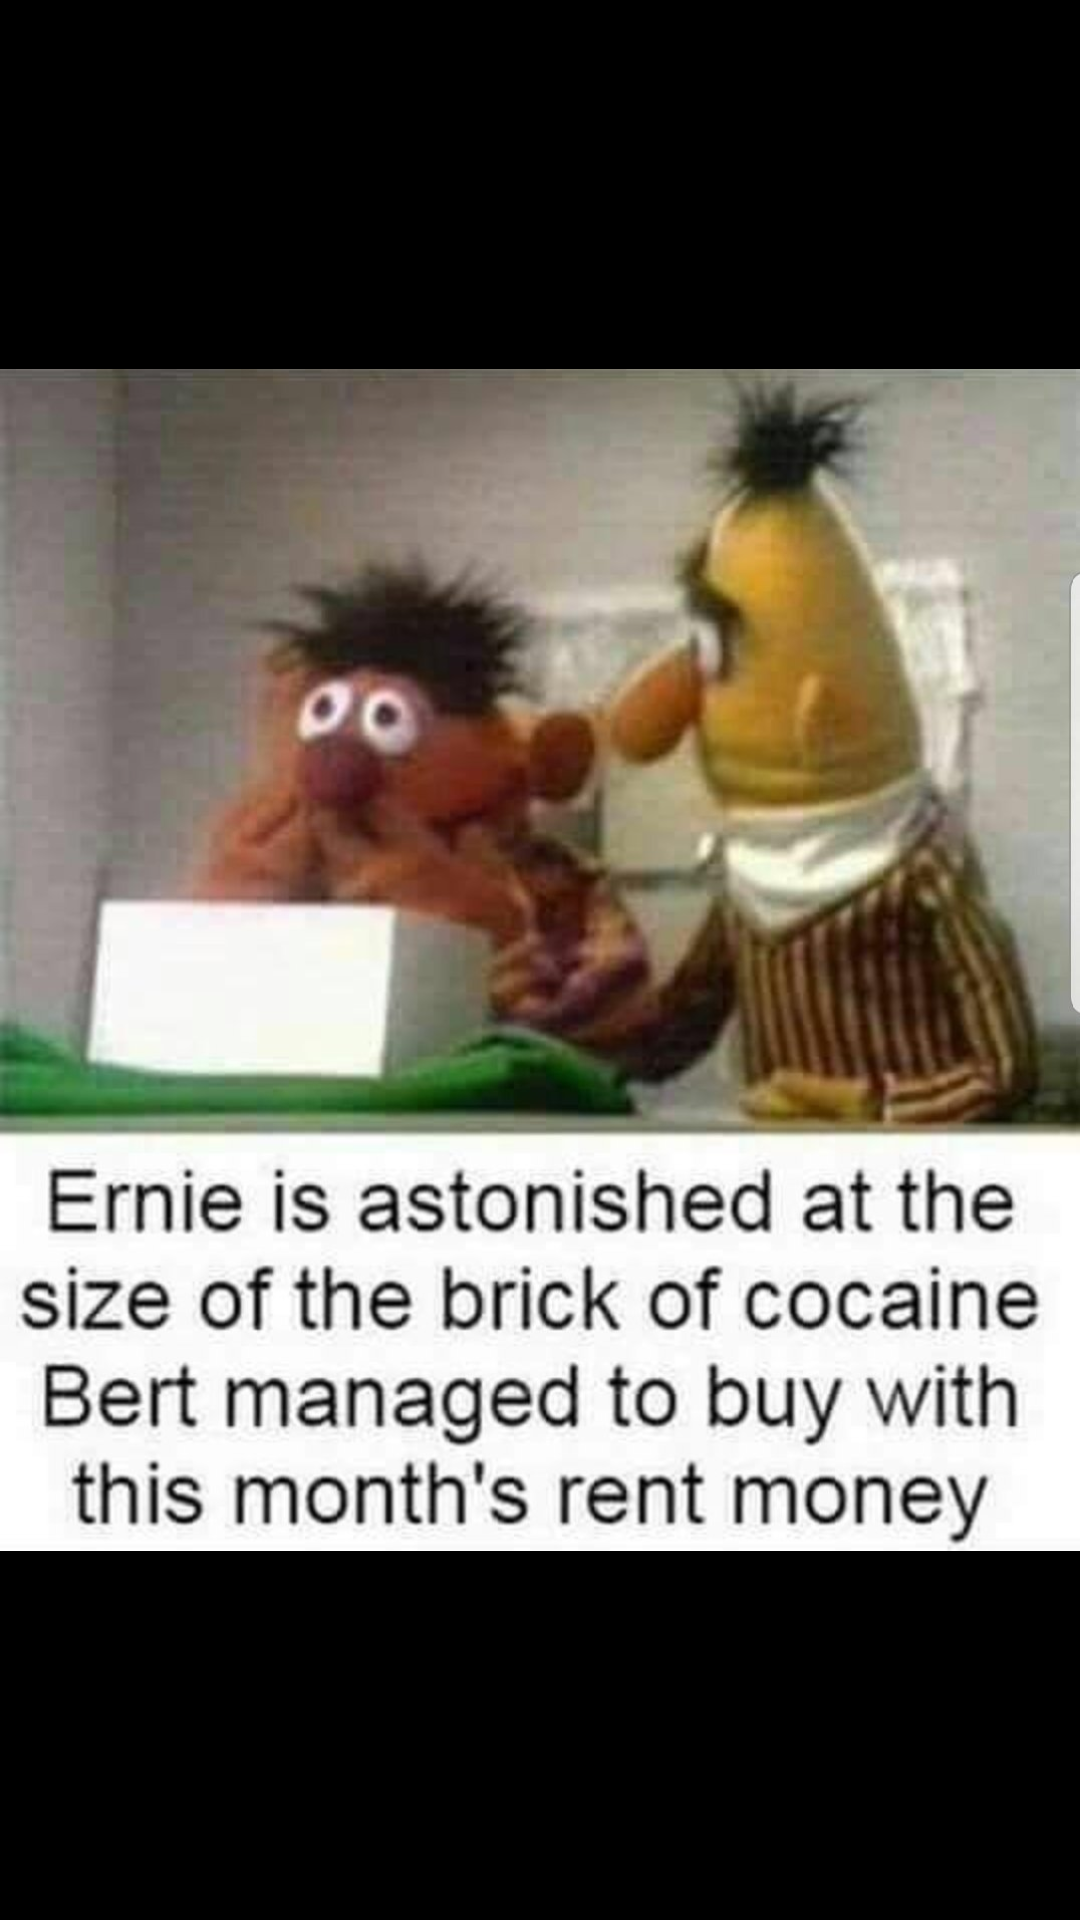 Ernie's a casual change my mind